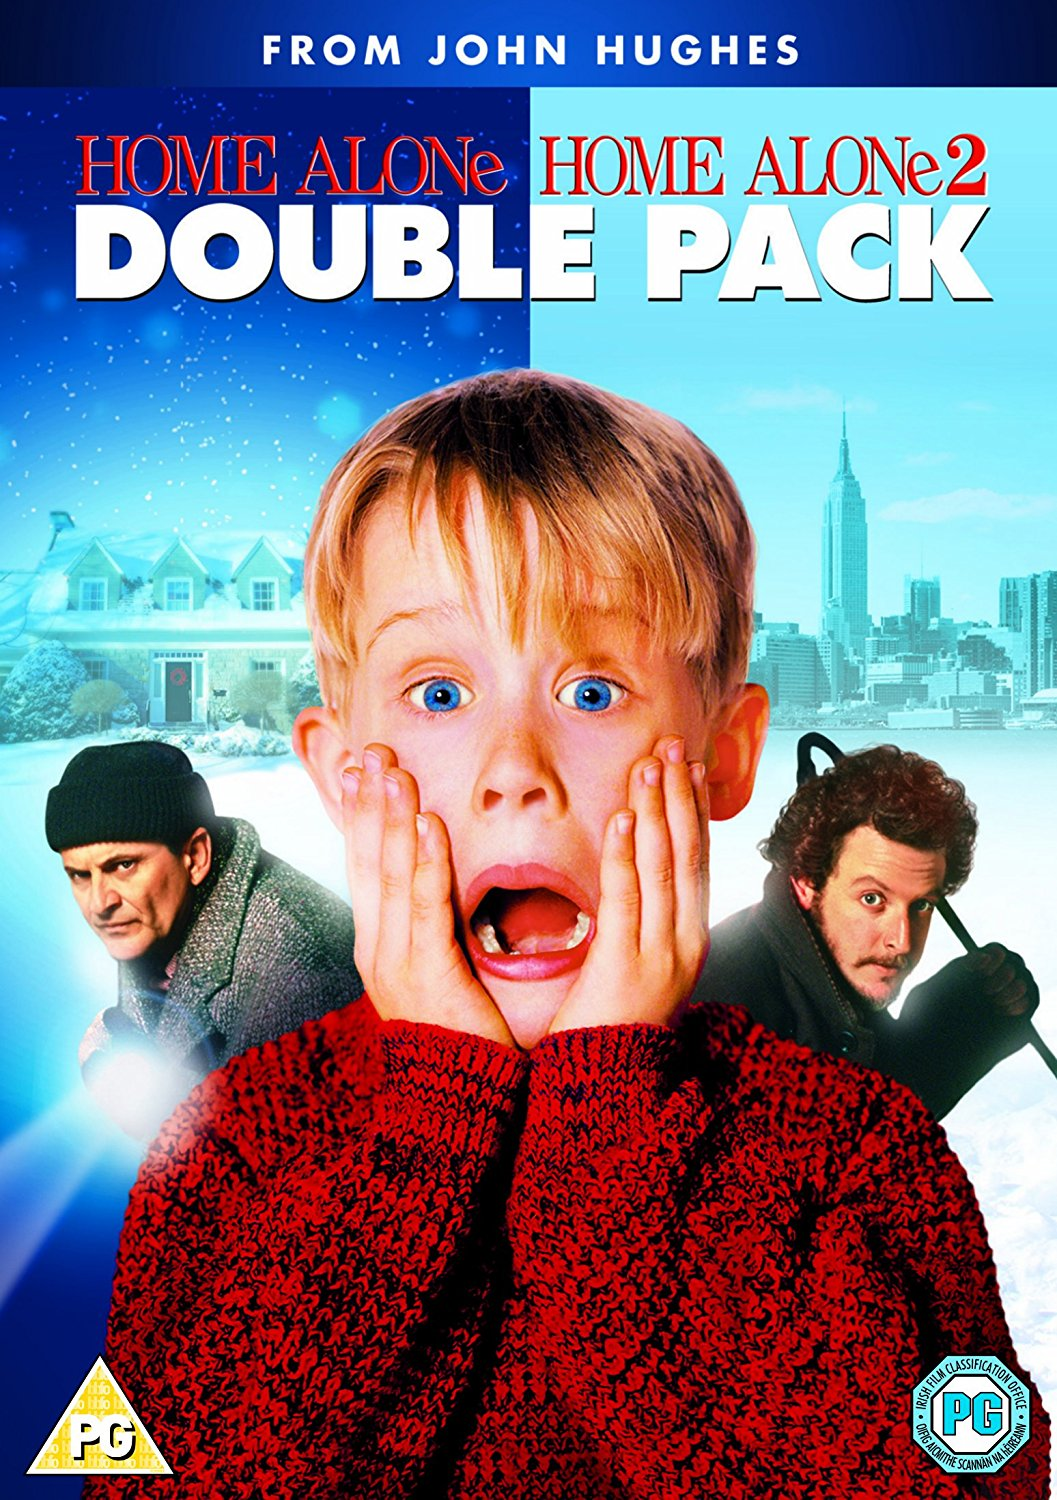 Home Alone on Amazon